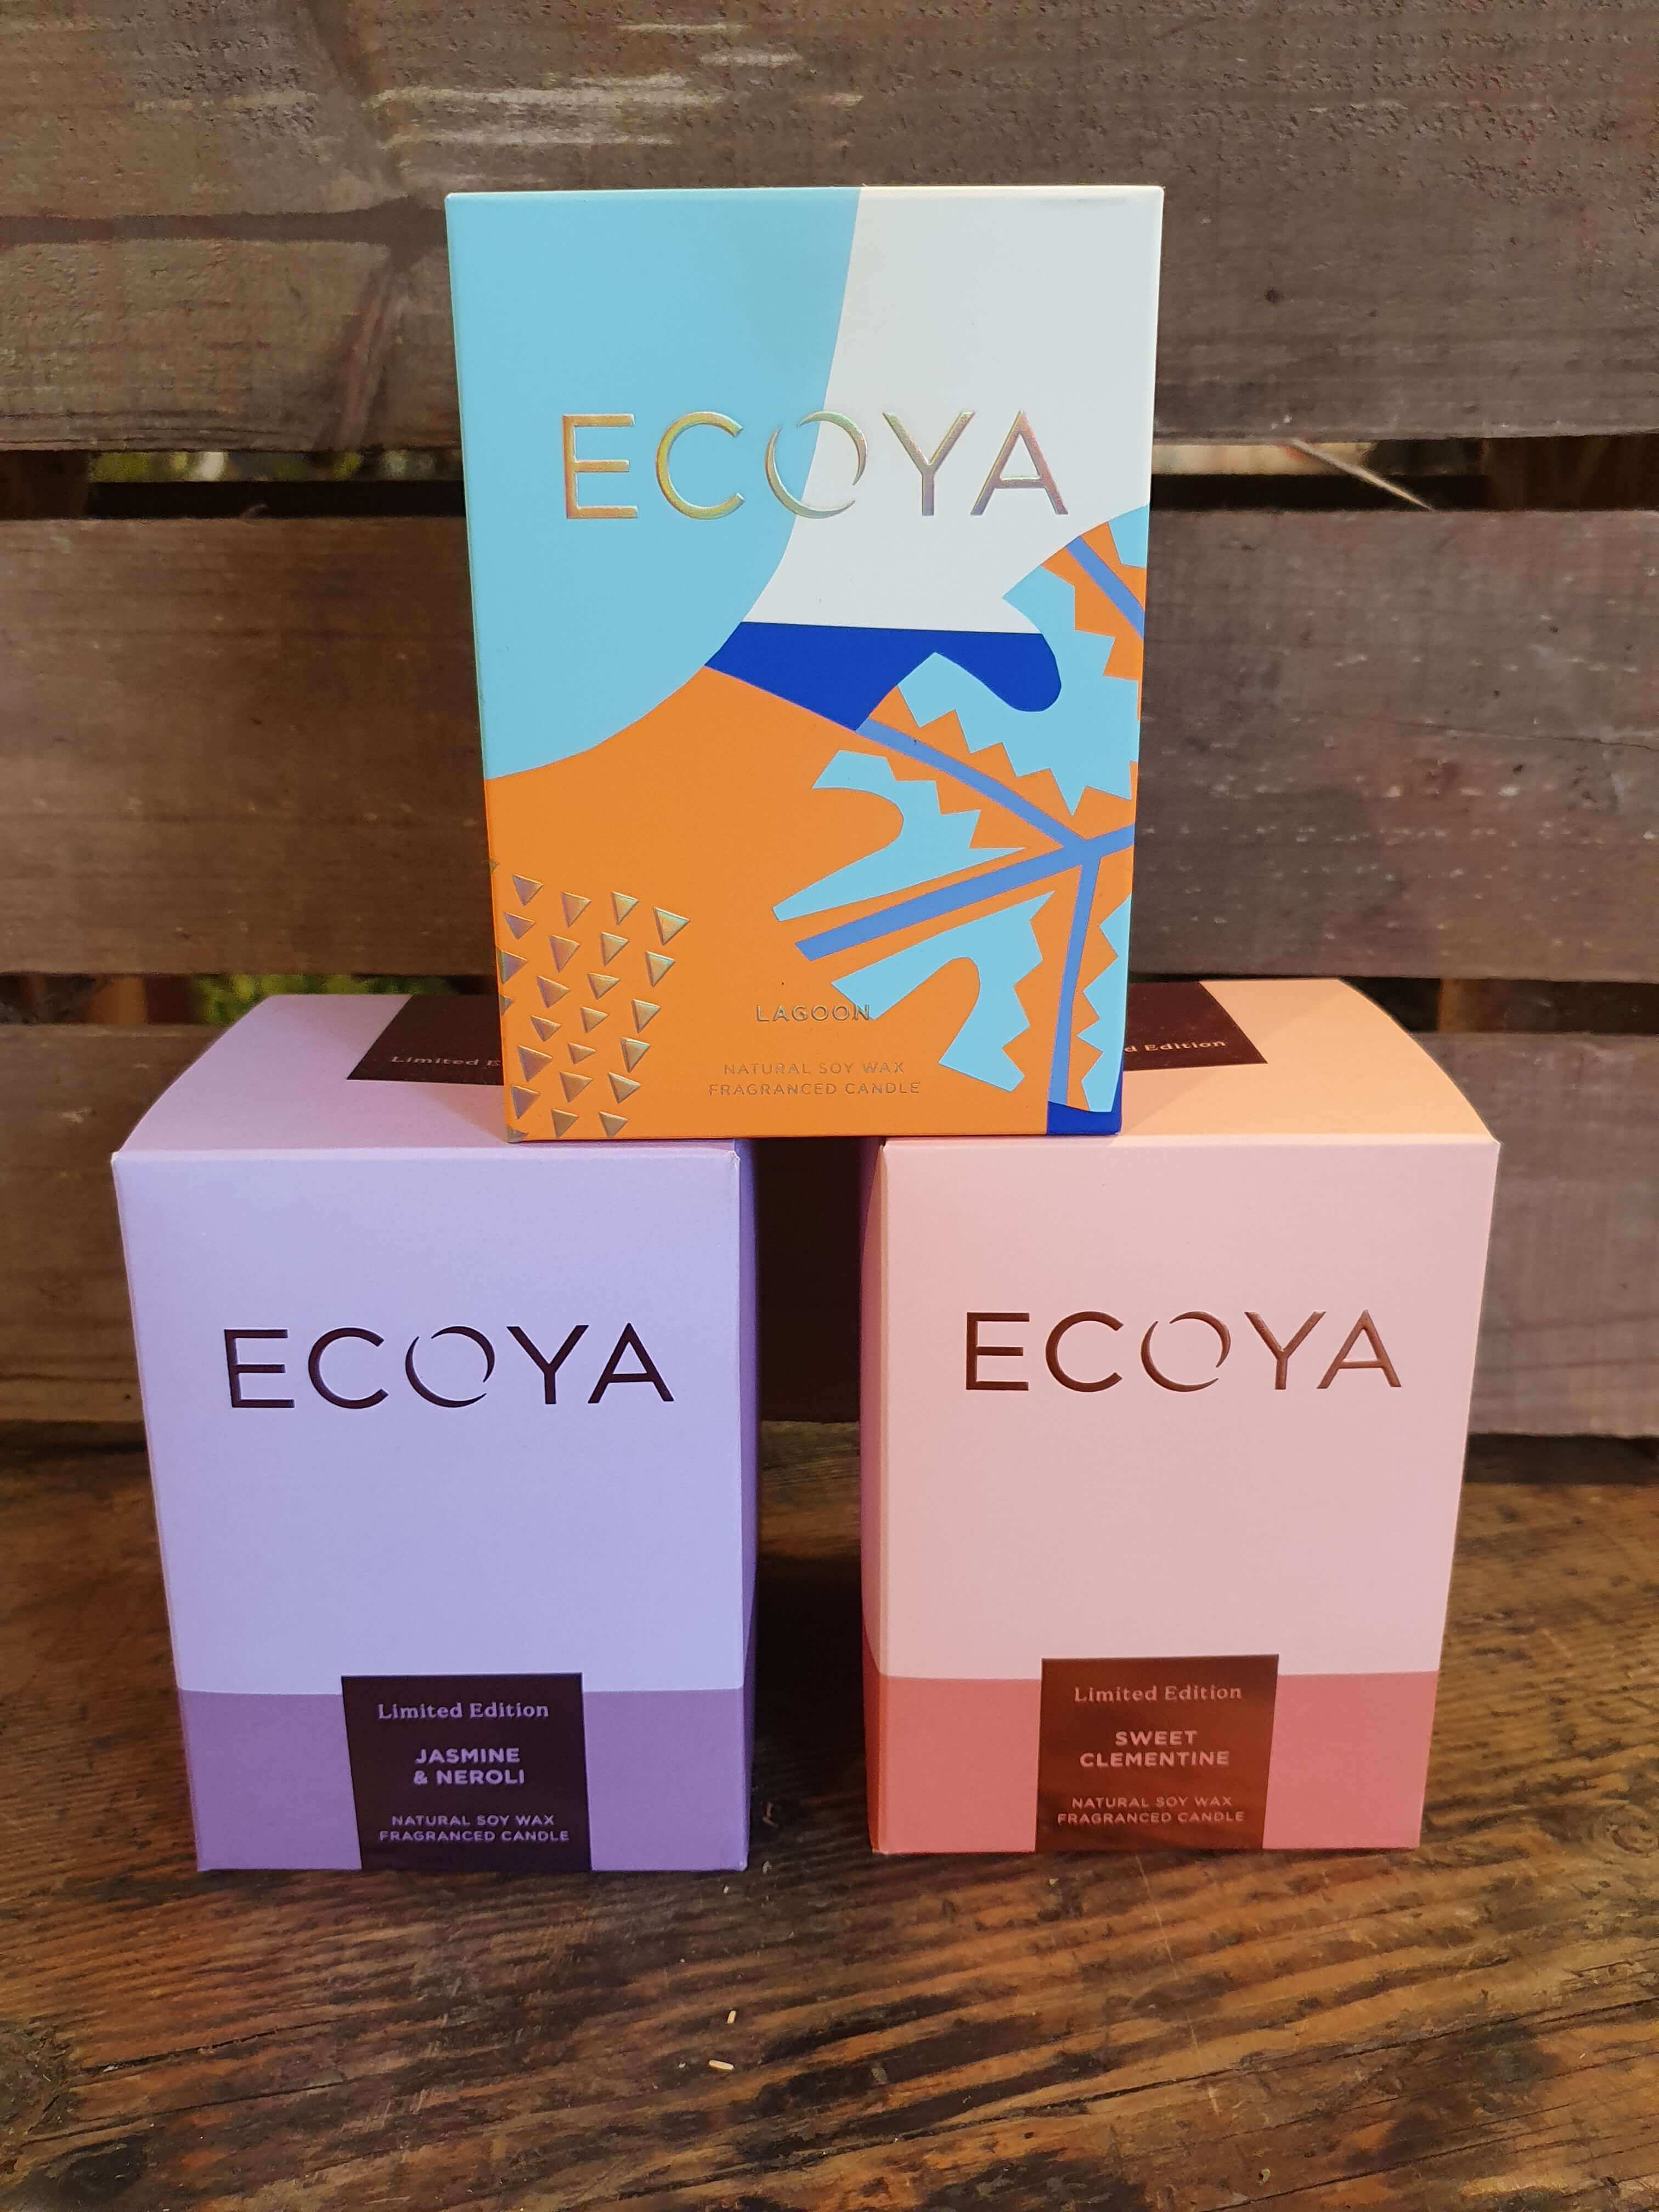 Limited Edition Ecoya Candles